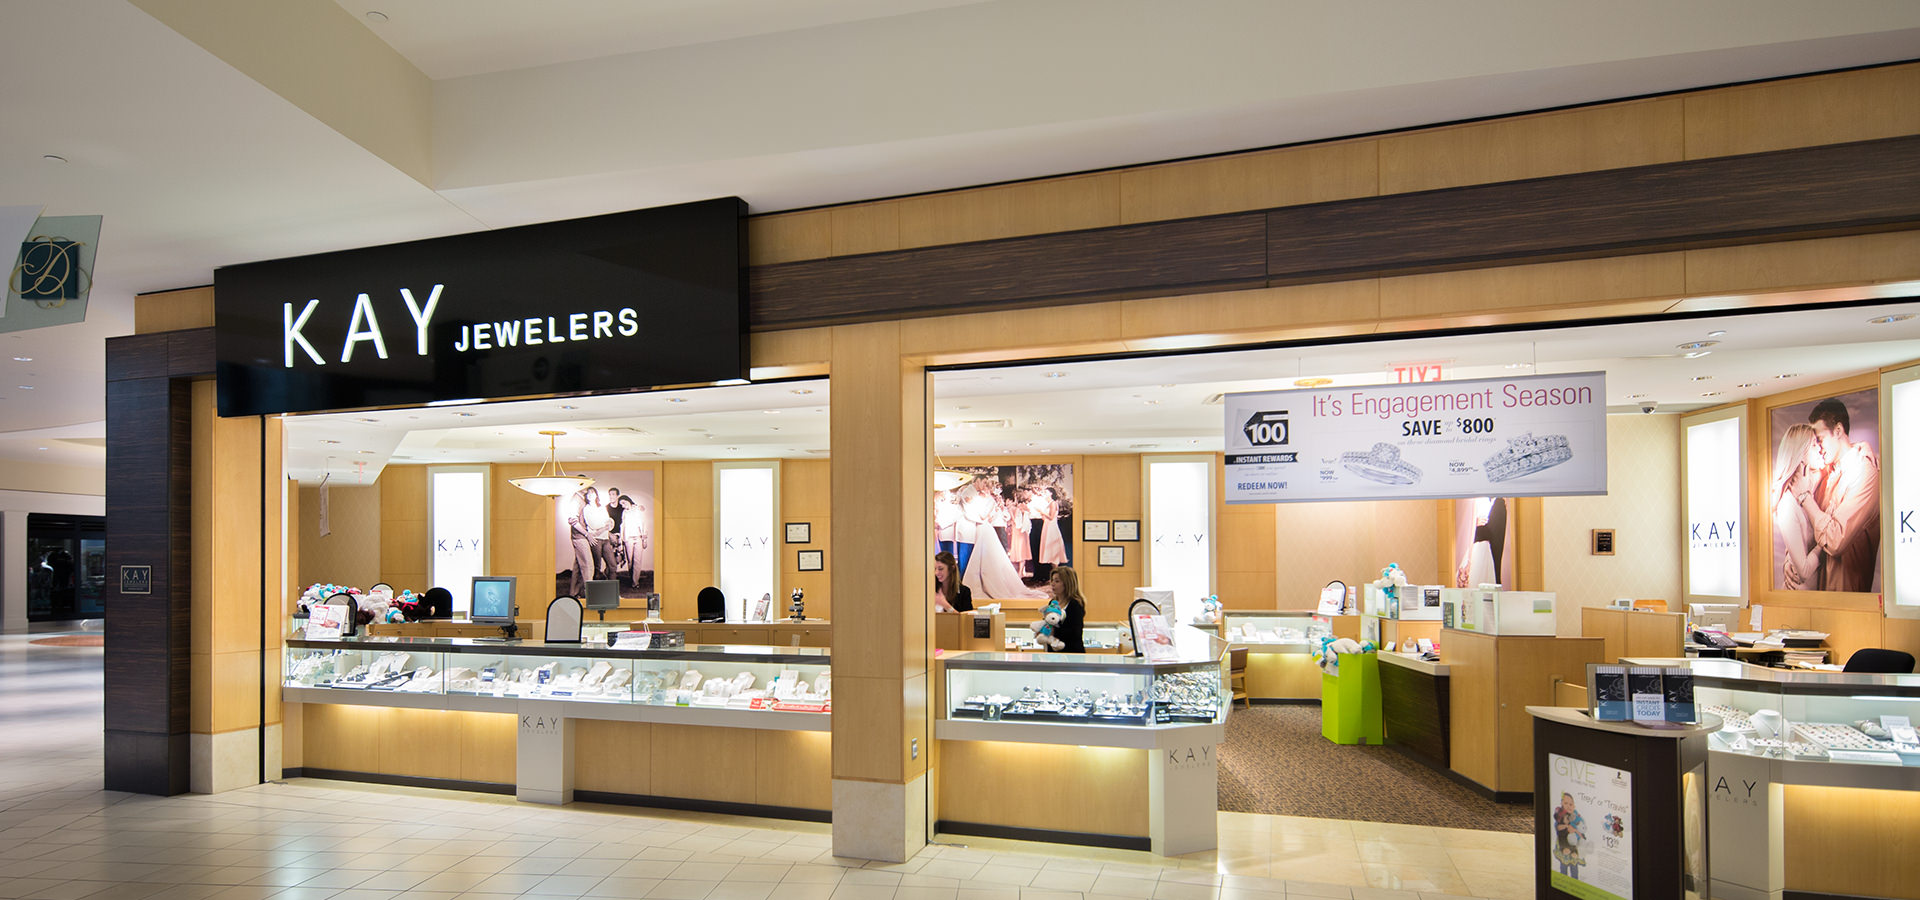 Kay jewelers in dulles va dulles town center for Jewelry stores in dfw area